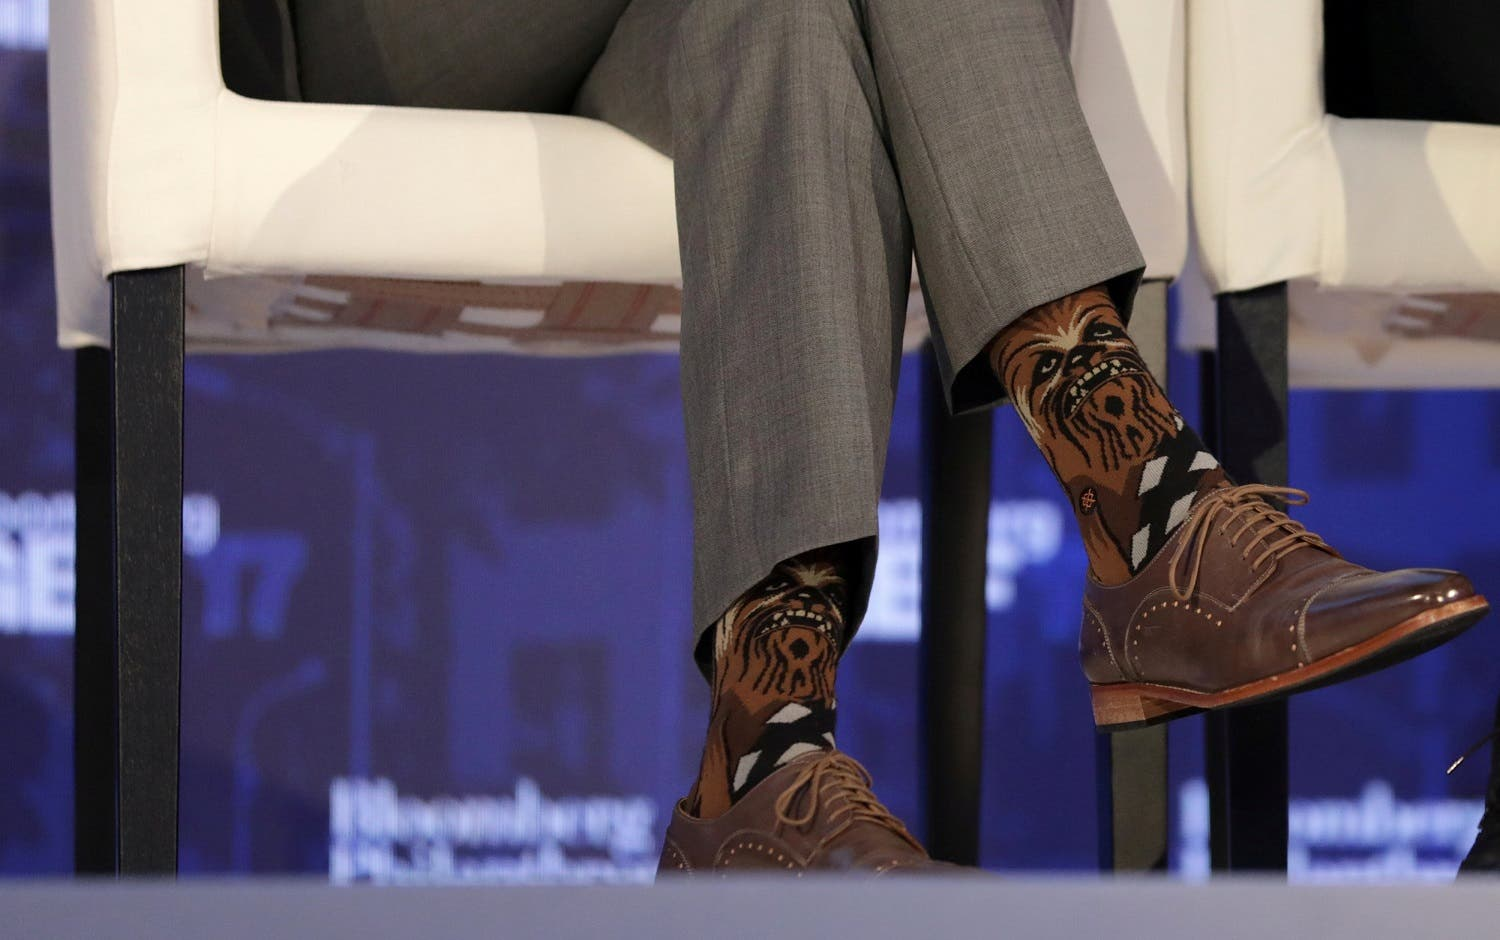 Justin Trudeau wears Chewbacca socks while participating in a panel discussion at a Bloomberg Global Business Forum panel event in New York, on September 20, 2017. (Reuters)